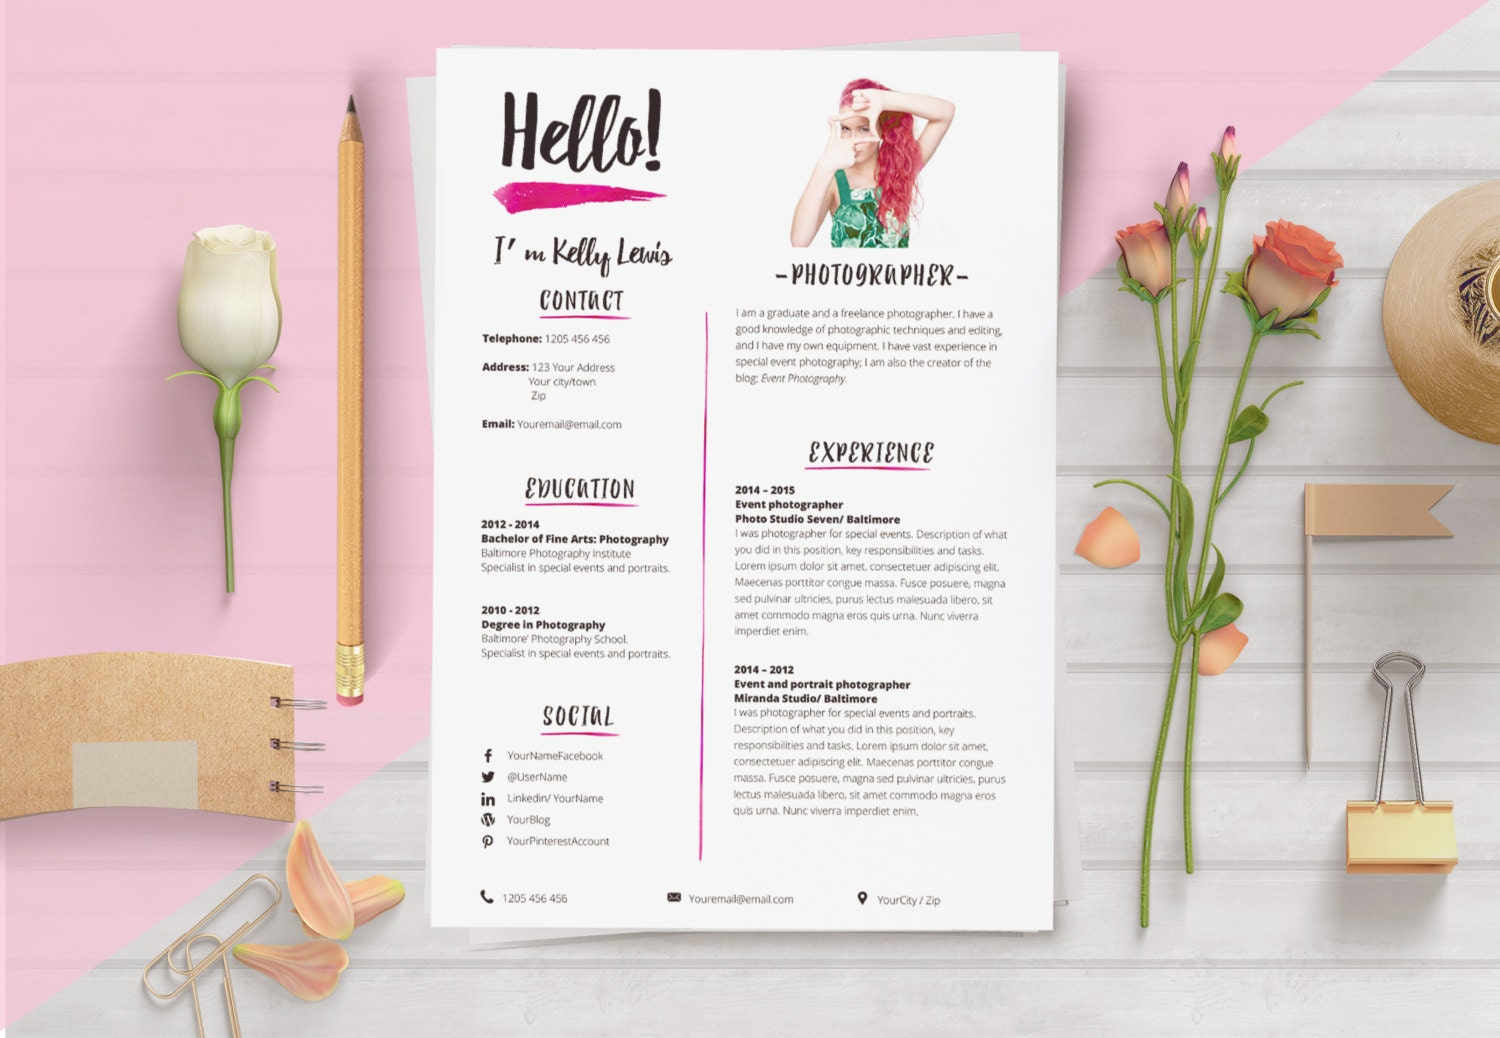 Elegant Résumé Template. 2 Pages Resume Cover Letter 1